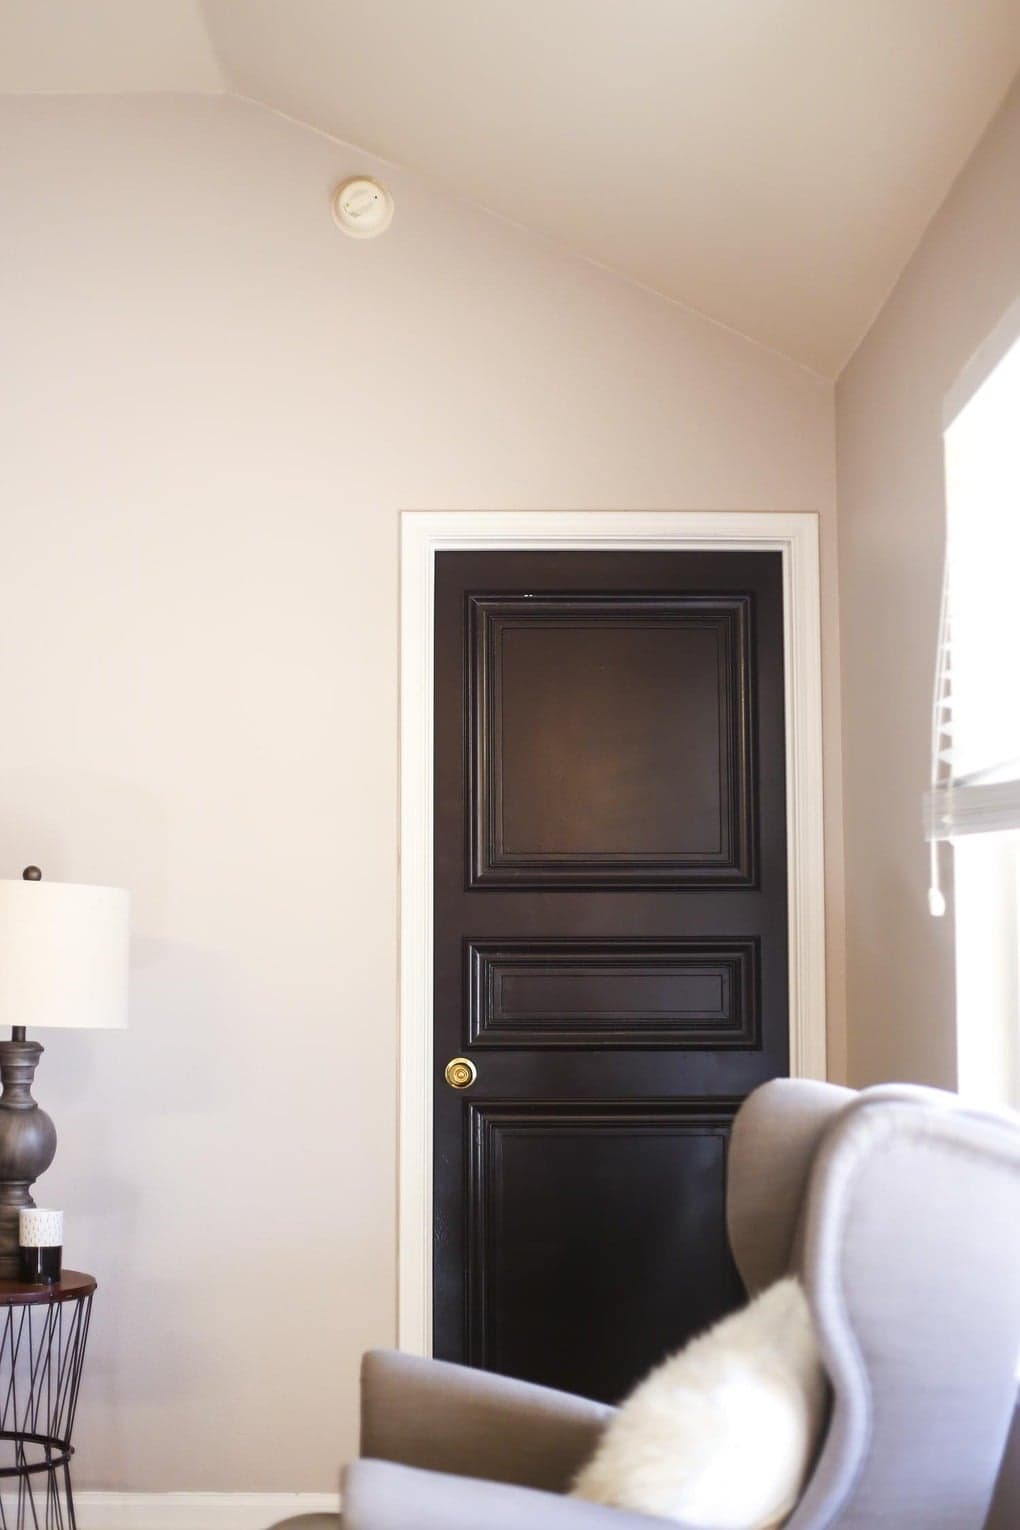 DIY Paneled Door - how to take a plain hollow core door and turn it into a paneled, beautiful, high-end door!